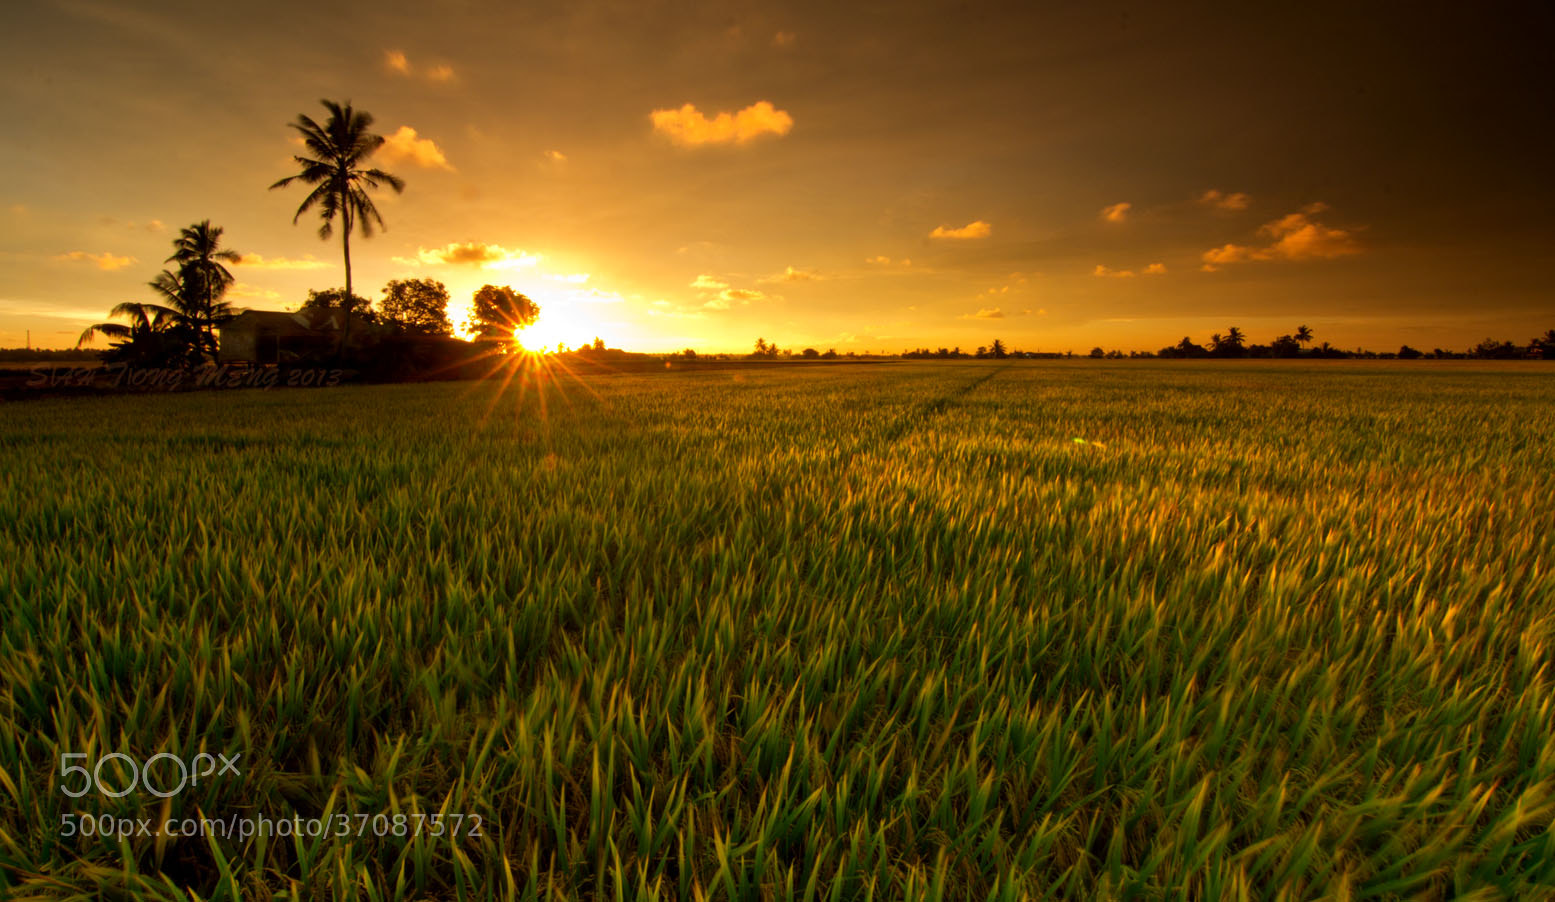 Photograph 风中的夕阳 by SIAH TIONG MENG on 500px